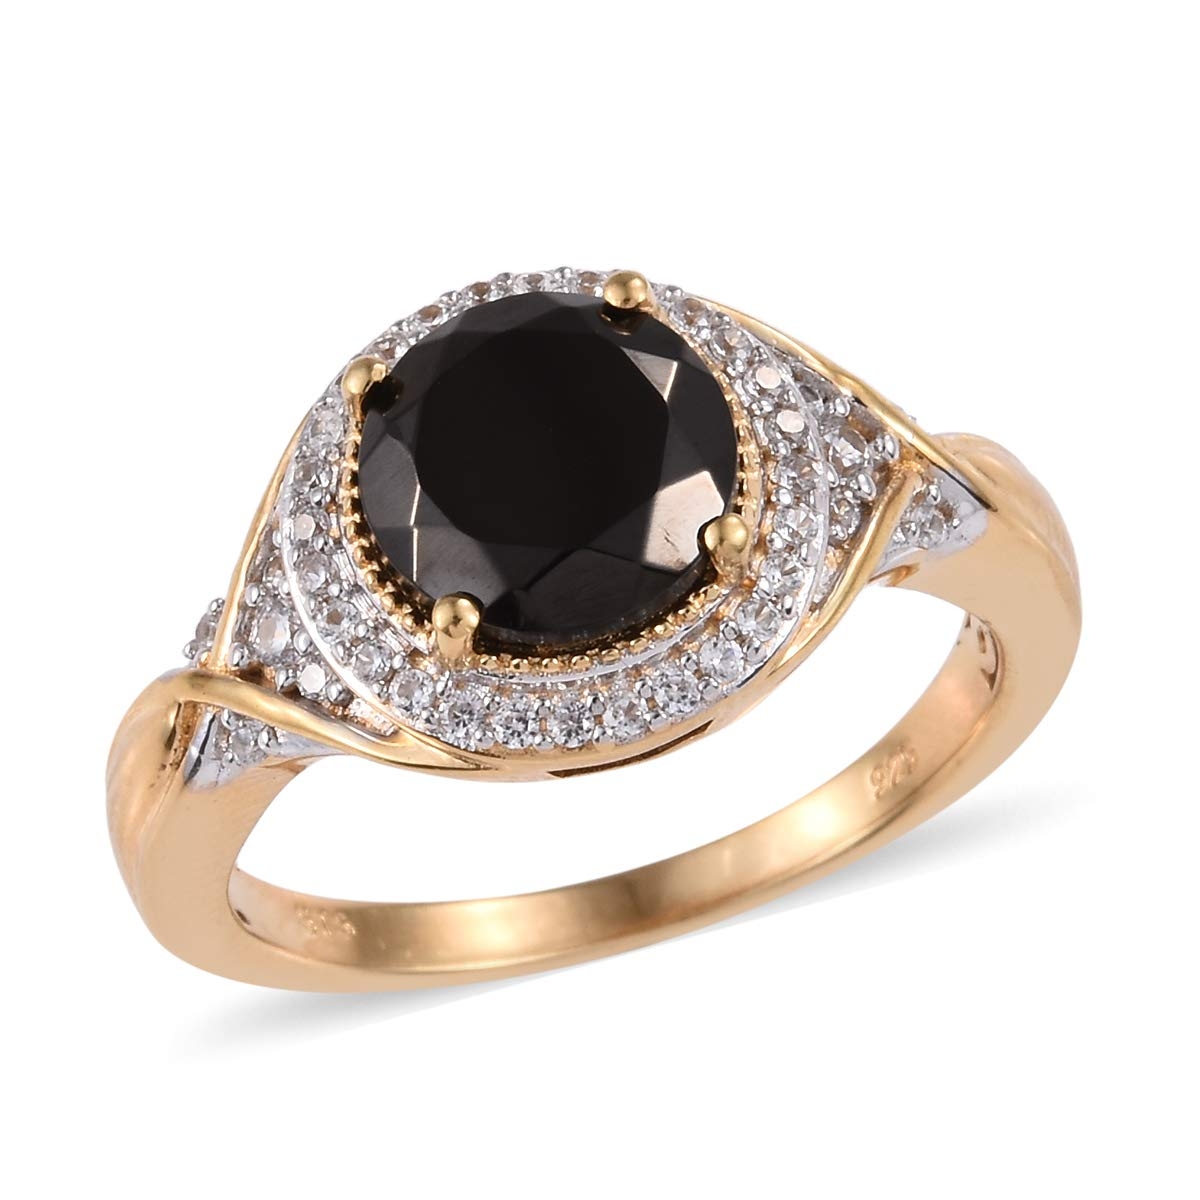 Promise Ring 925 Sterling Silver Vermeil Yellow Gold Shungite Zircon Jewelry for Women Size 7 Ct 1.8